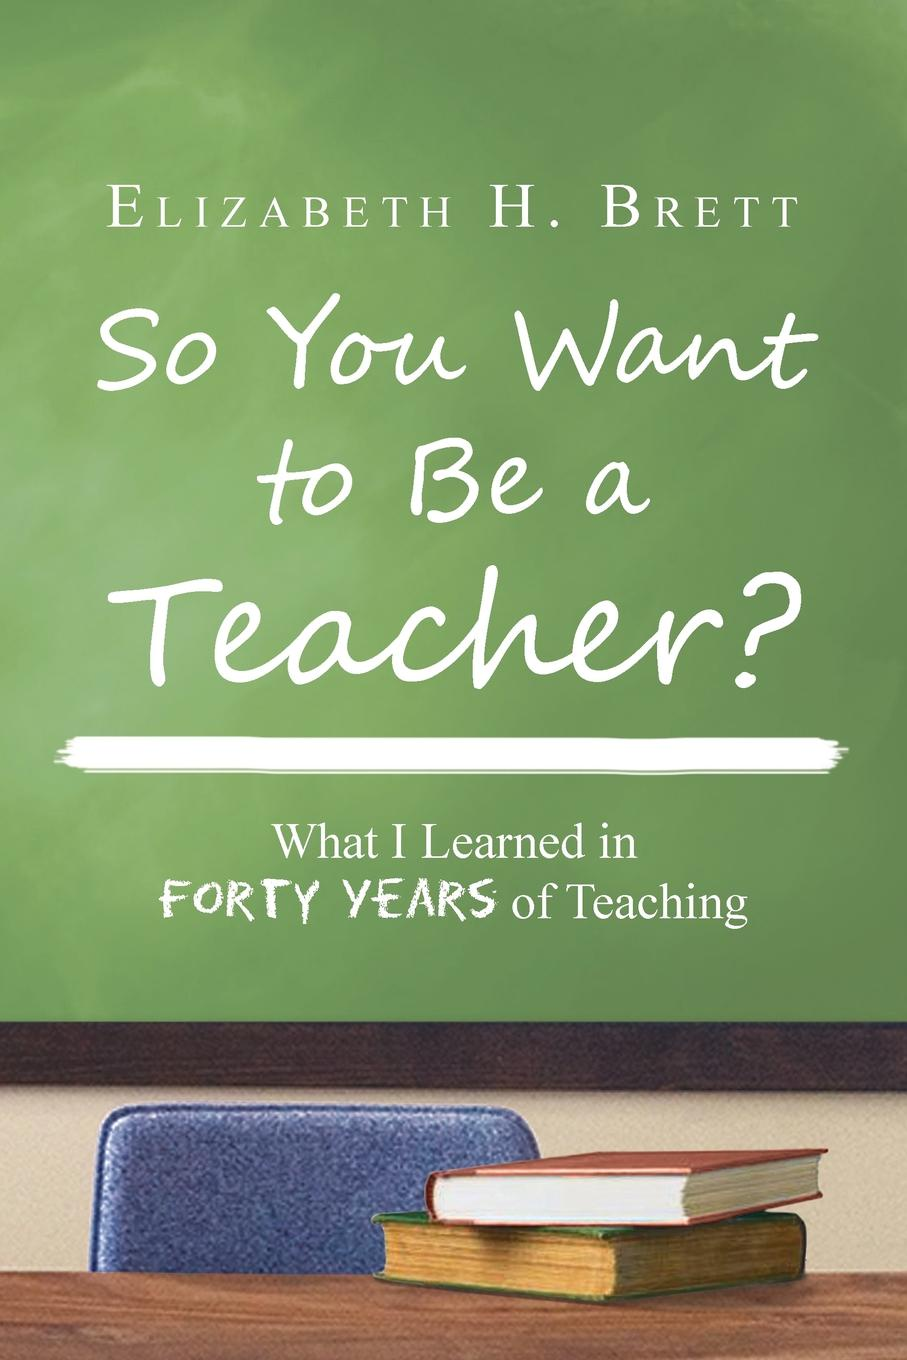 Elizabeth H. Brett So You Want to Be a Teacher?. What I Learned in Forty Years of Teaching mikki e nix what i learned in love